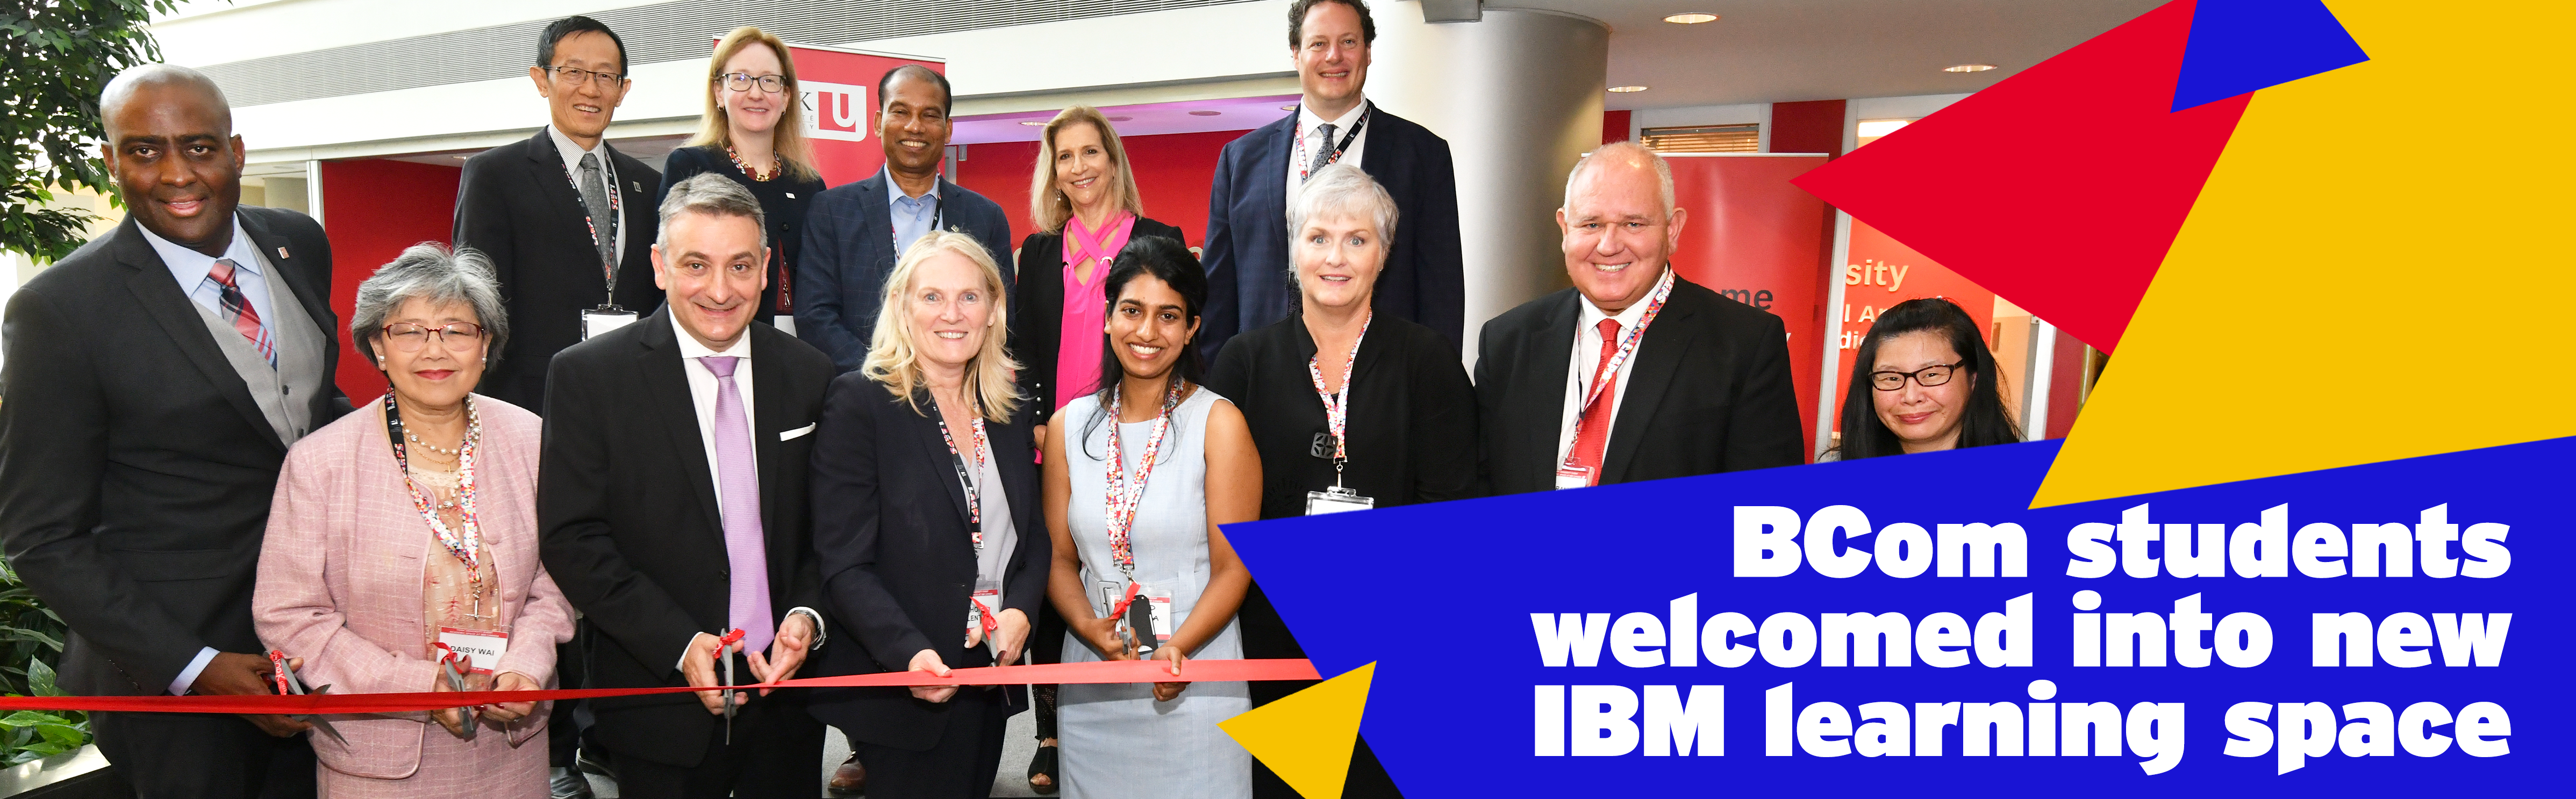 BCom students welcomed into new IBM learning space